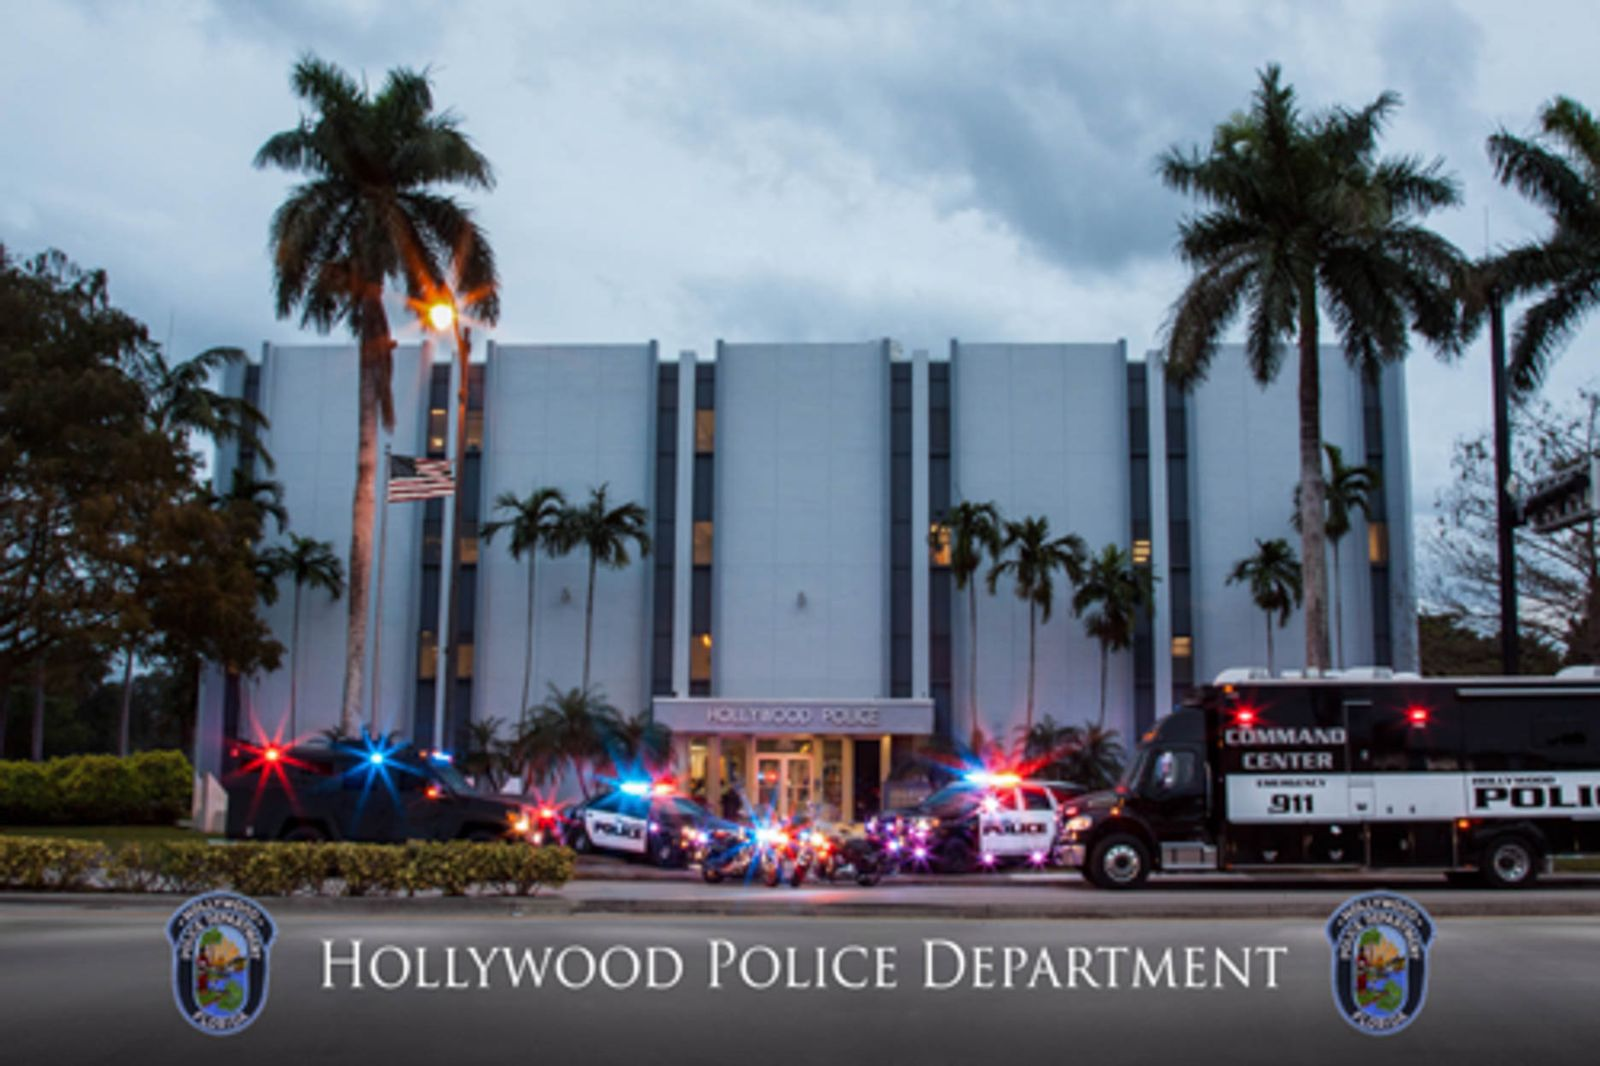 Hollywood Police Department - if charged with a crime contact a hollywood criminal defense attorney